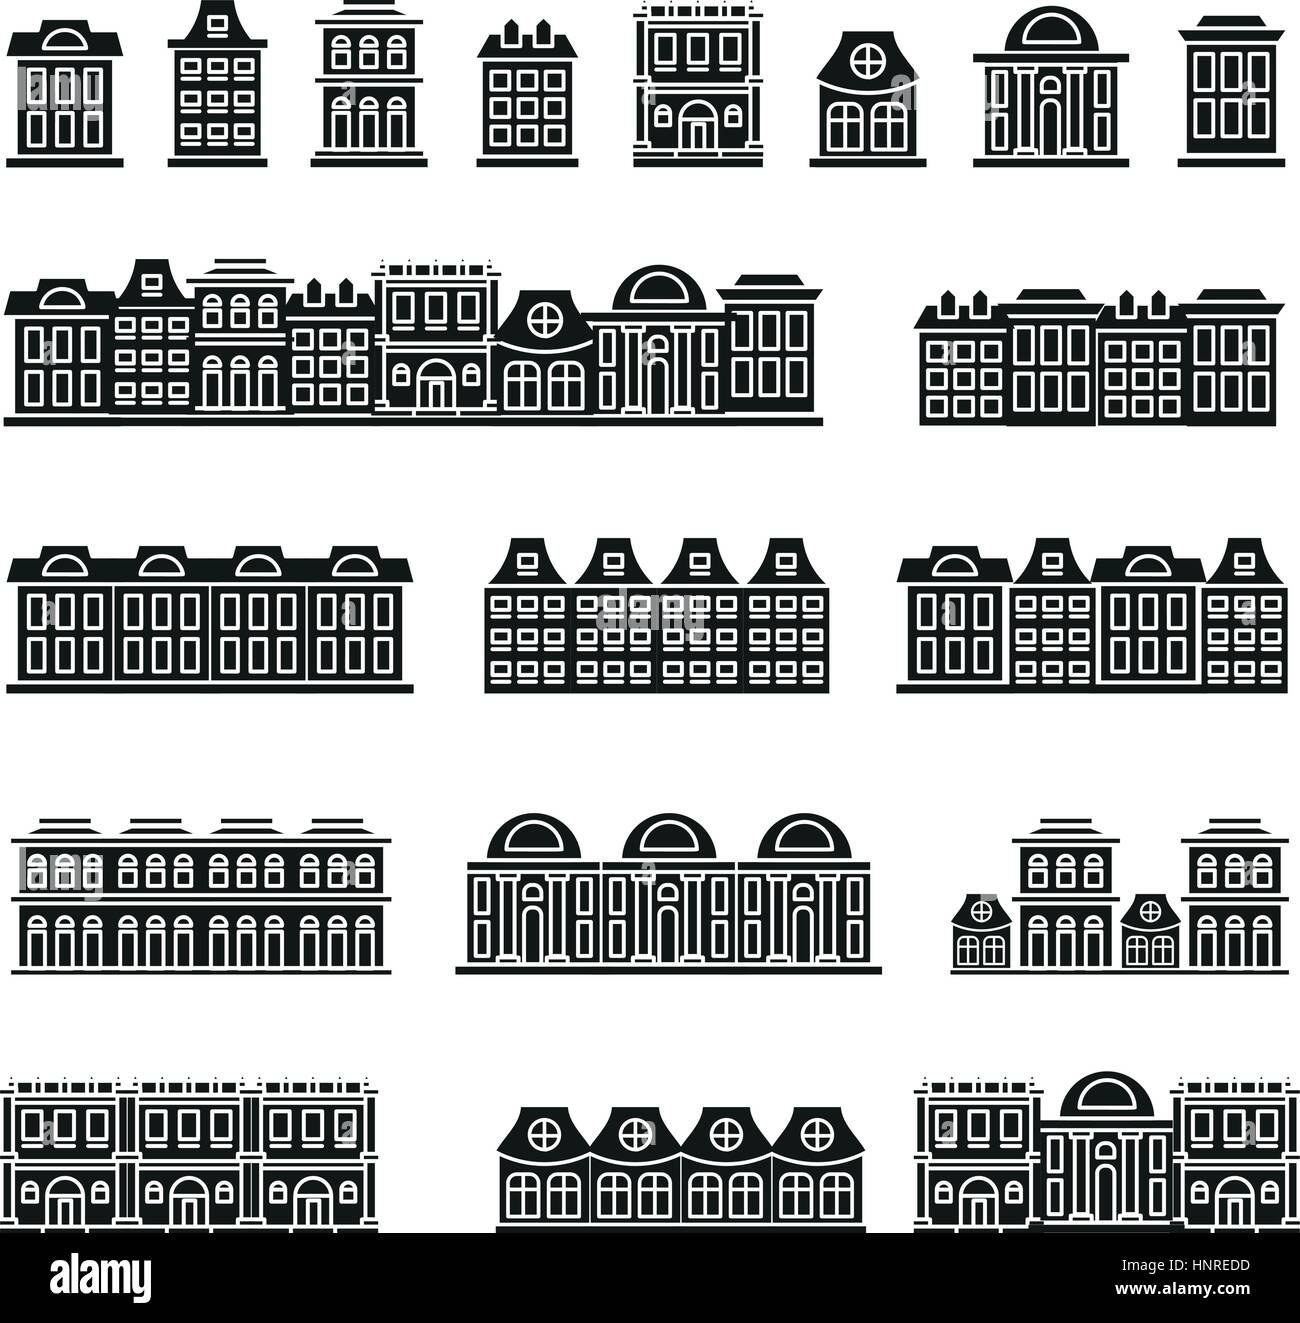 Construction icons set in flat stockfotos construction icons set in flat bilder alamy - Architektonische hauser ...